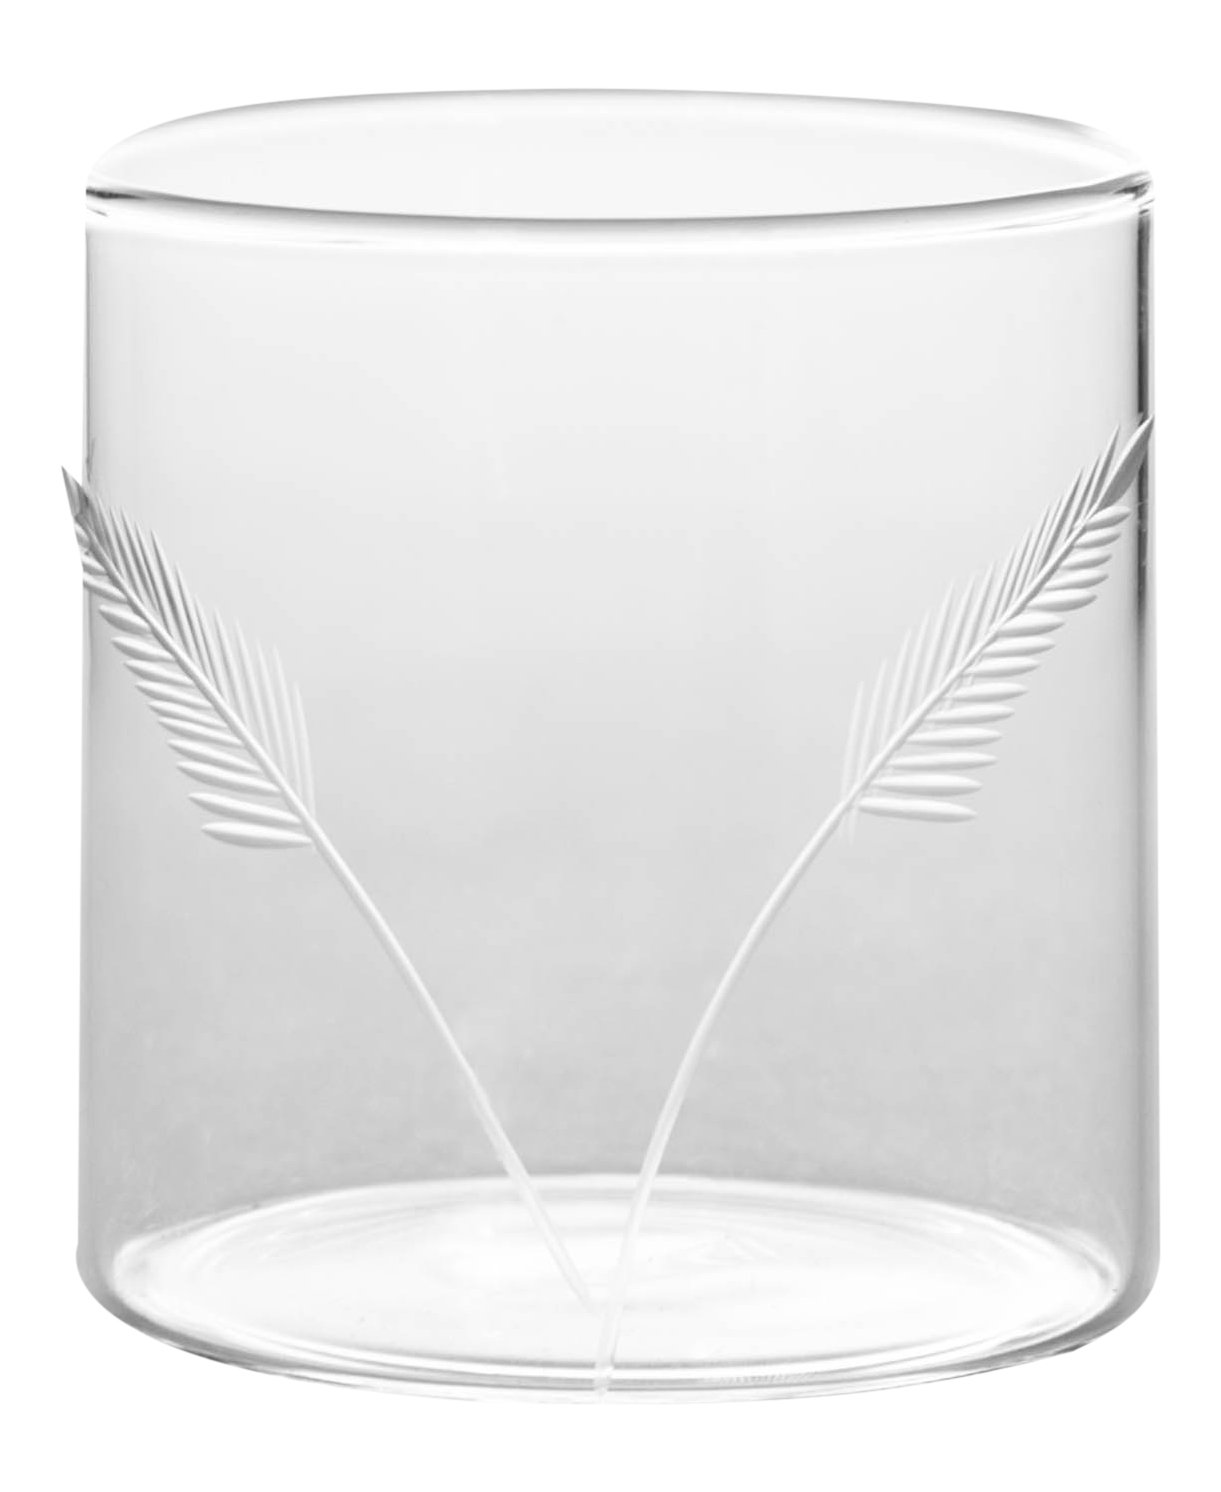 Borosil VDFT305 Vision Deco Fern Tumbler [Set of 6] - Clear Lightweight & Durable Drinkware, Odor Resistant, Dishwasher Safe - For Water, Juice, Beer, Wine, and Cocktails |10 Ounce Cups